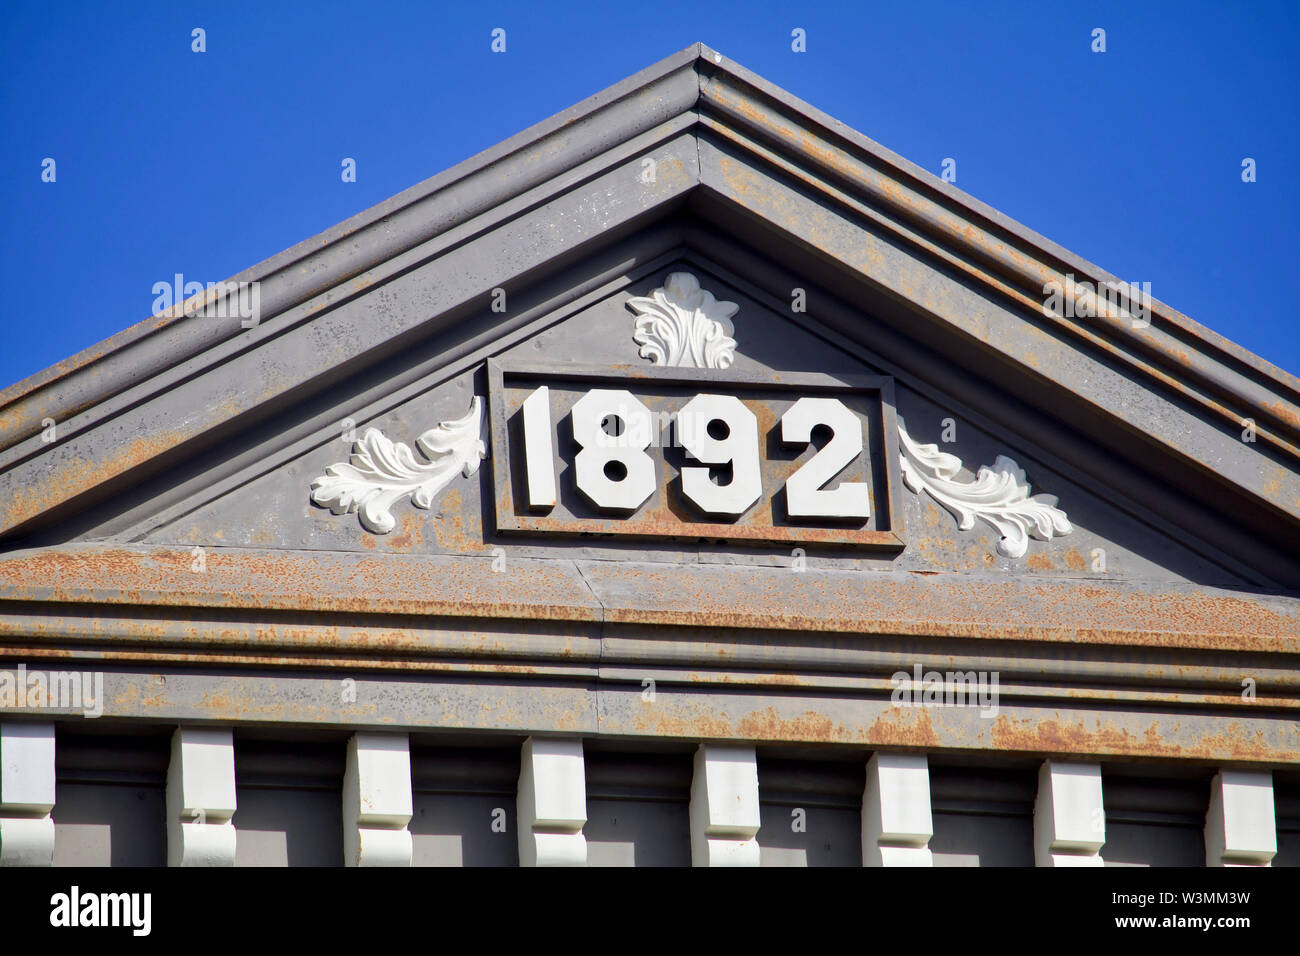 The facade of a nineteenth century building shows. - Stock Image